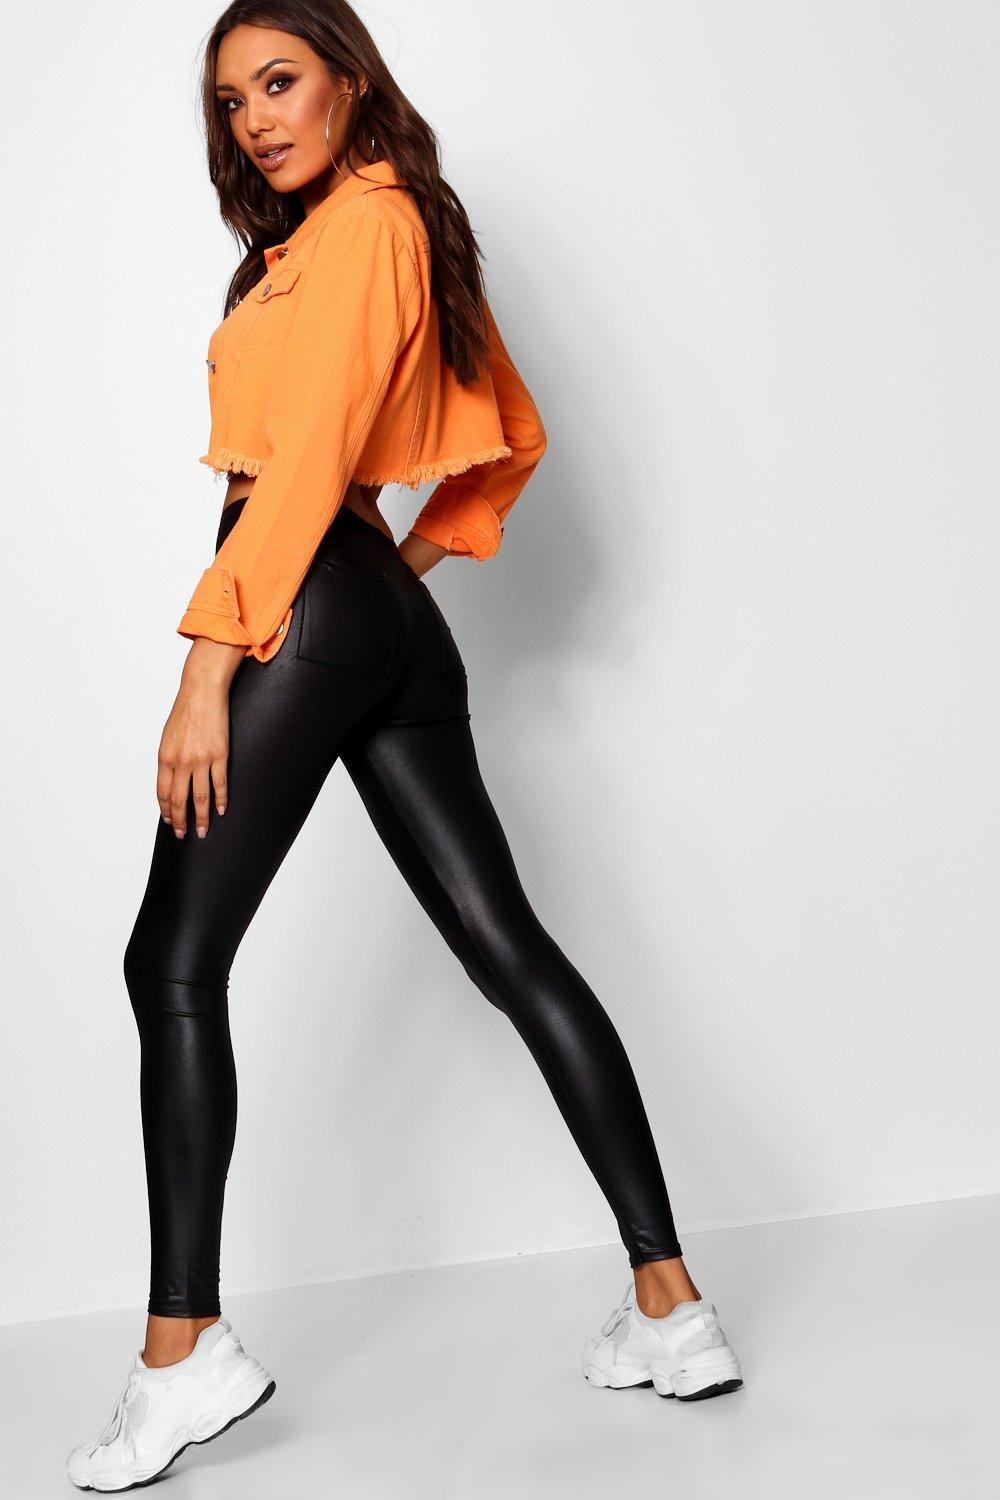 Estelle Wet Look Datex Pocket Back Leggings - Woven Trends